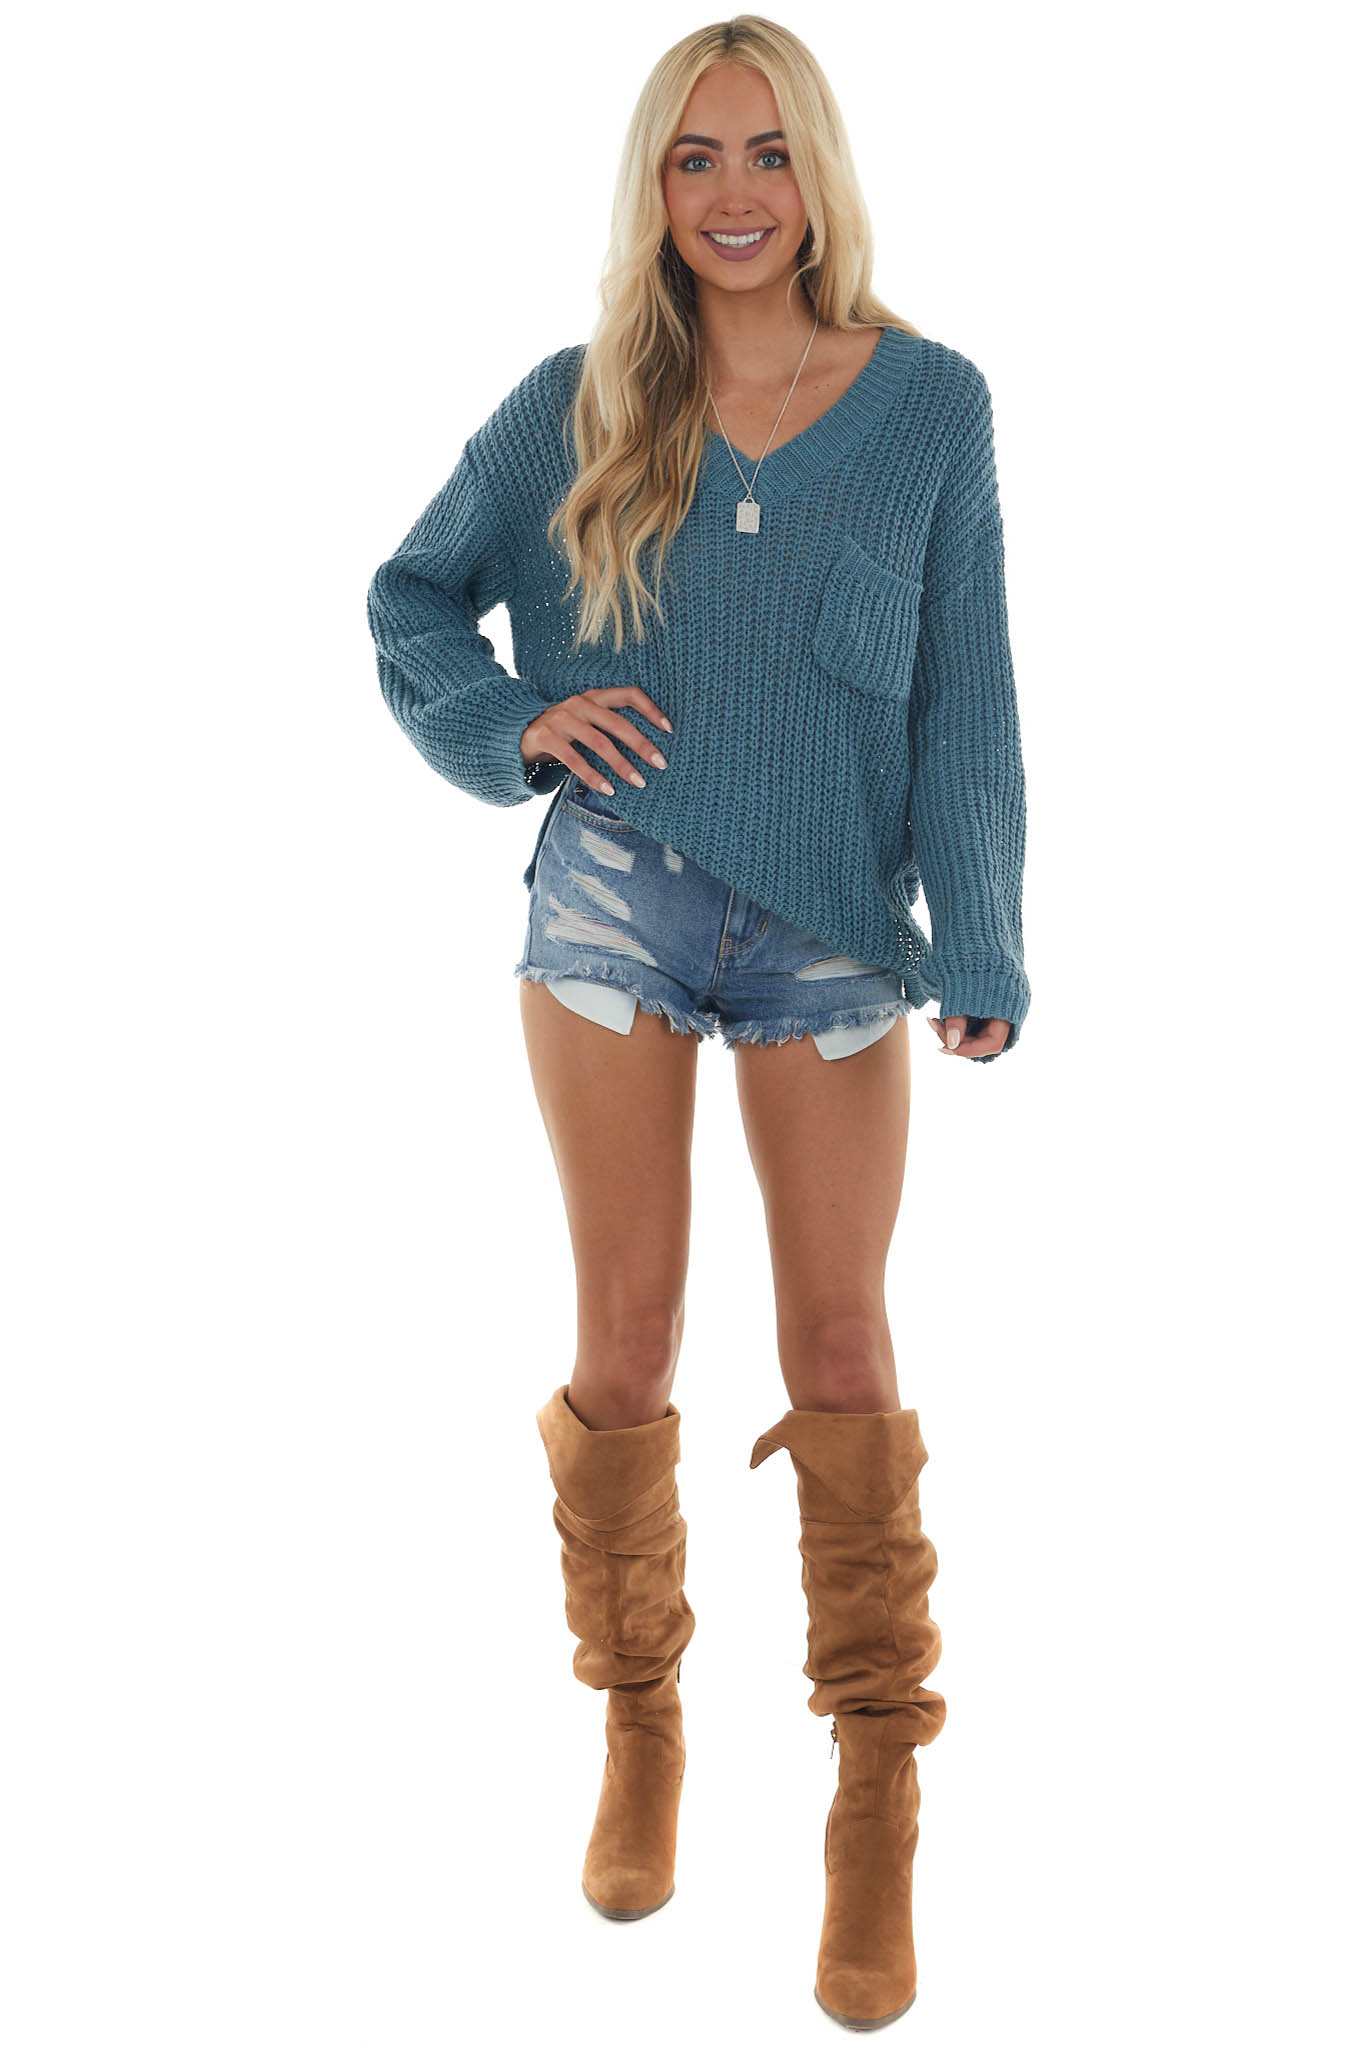 Sea Blue V Neck Thick Knit Pullover Sweater